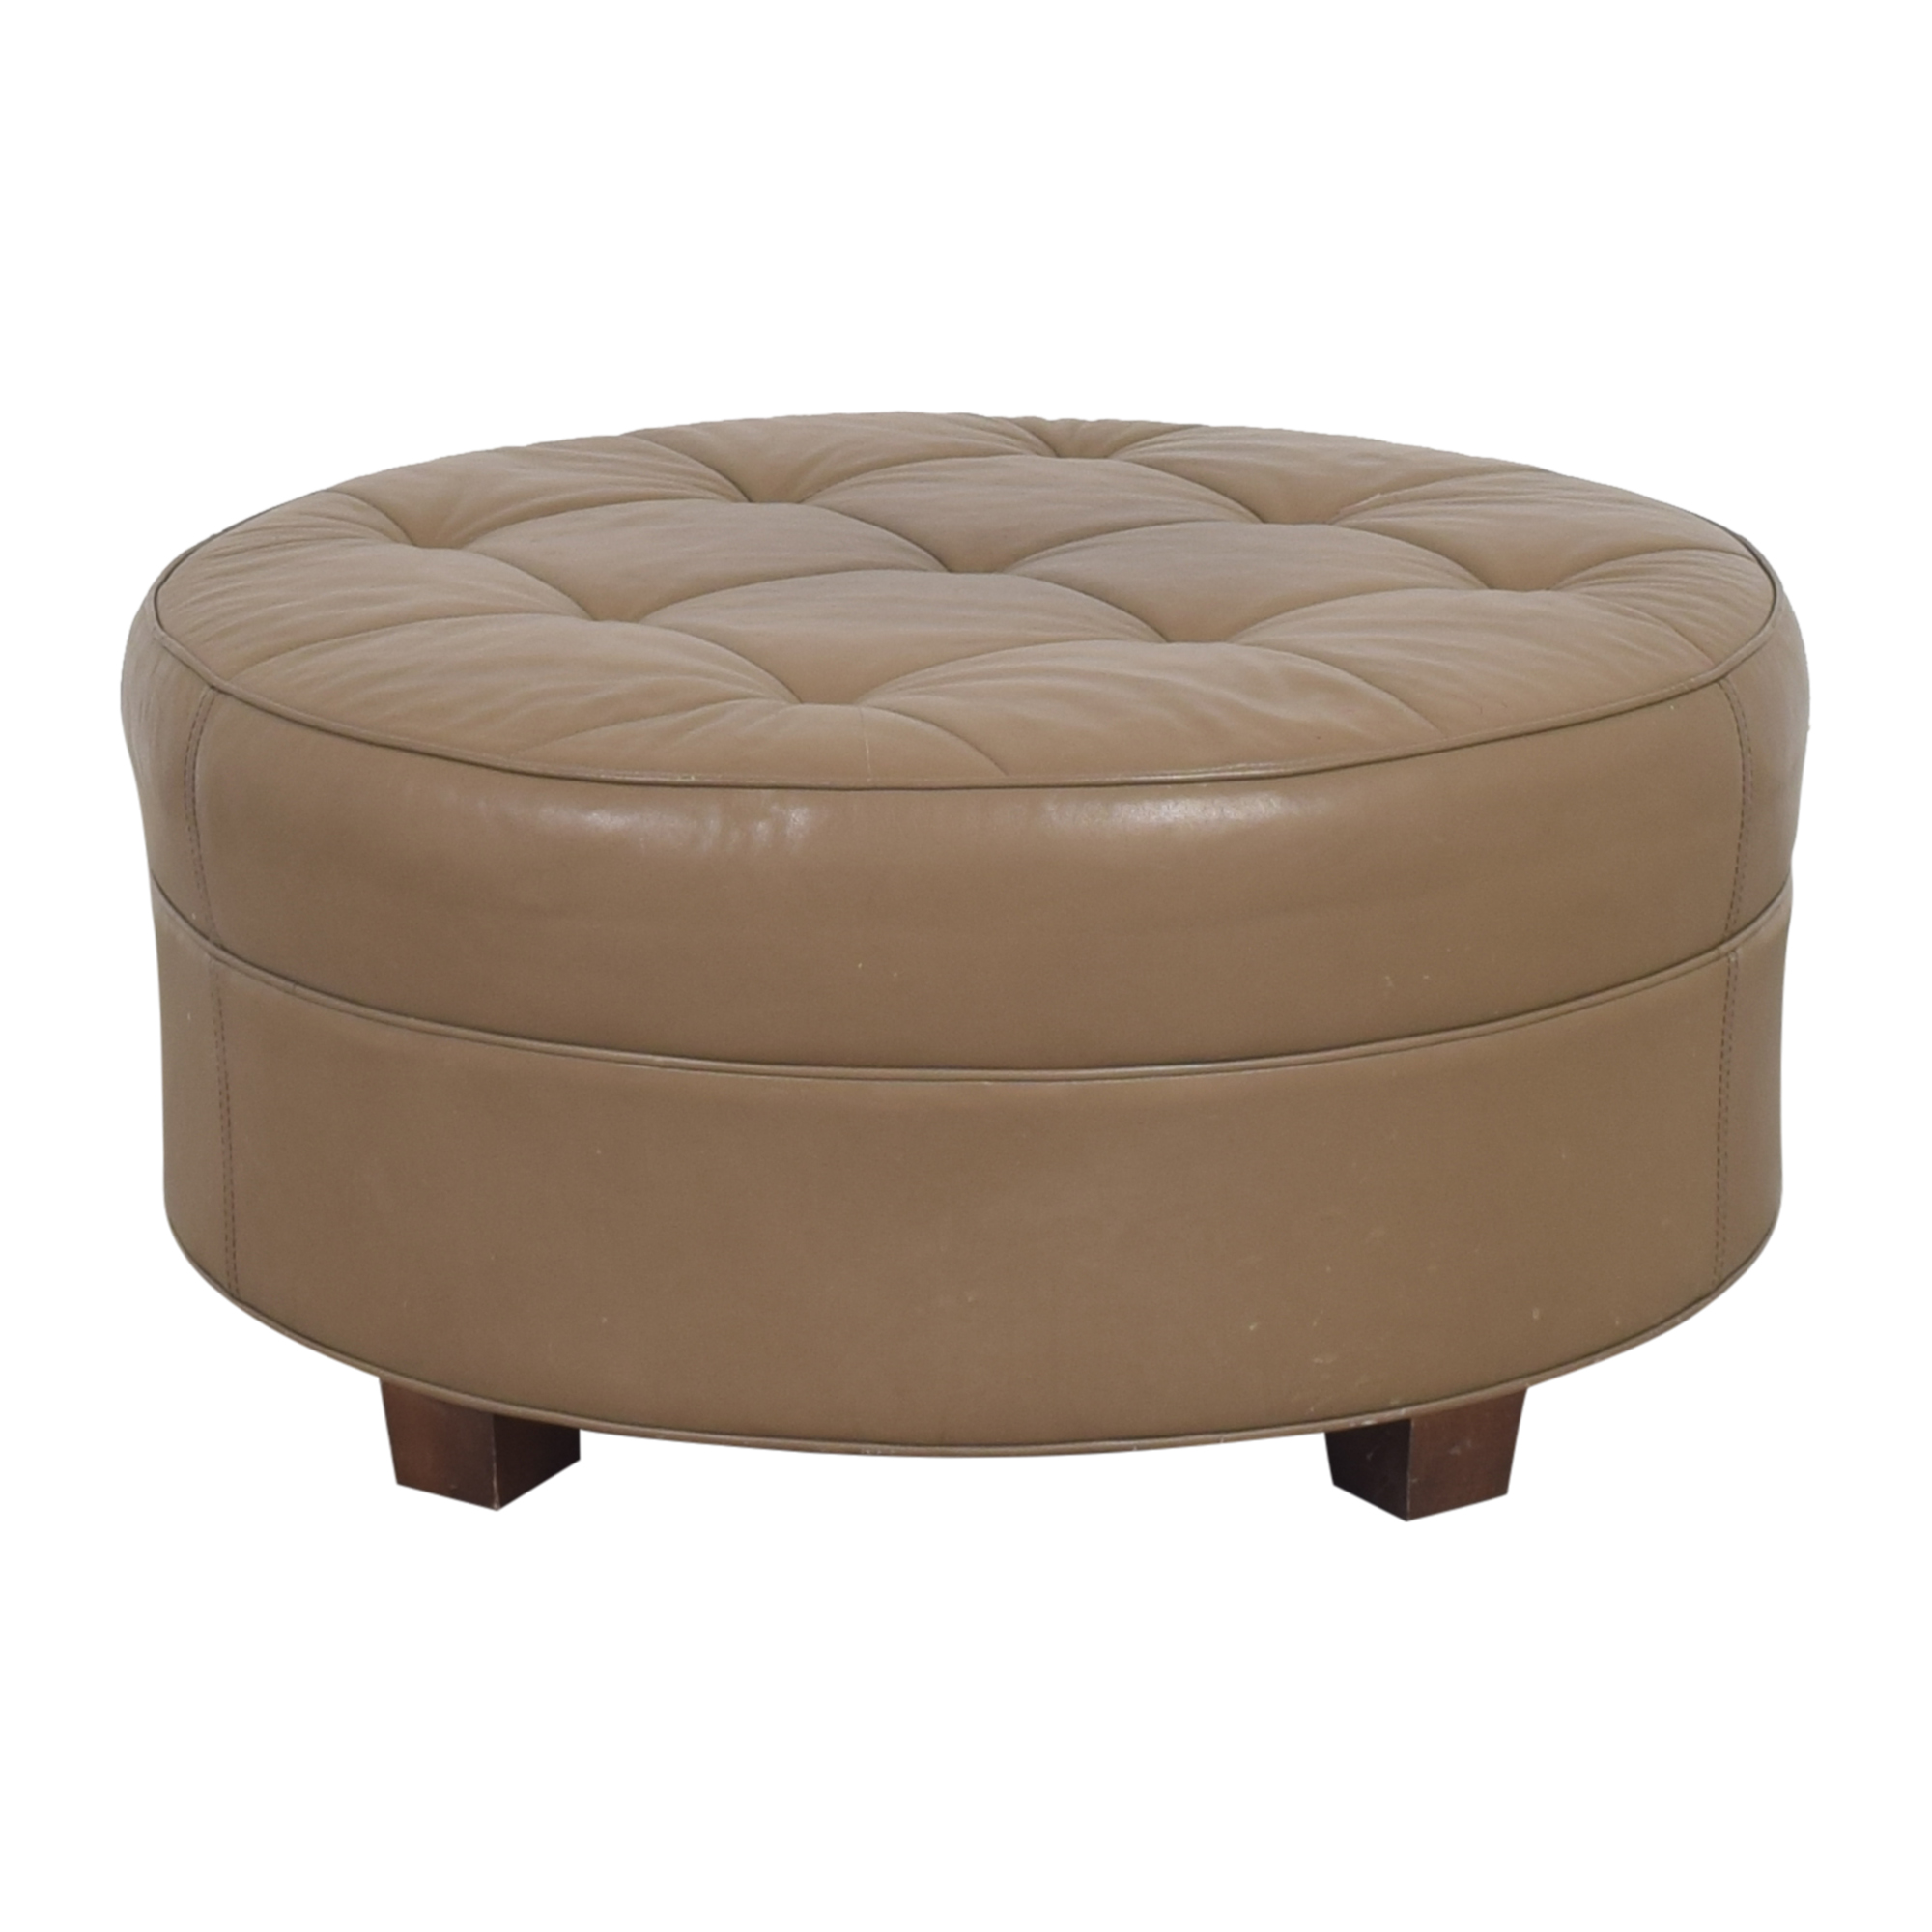 Stickley Furniture Stickley Furniture Round Tufted Ottoman pa